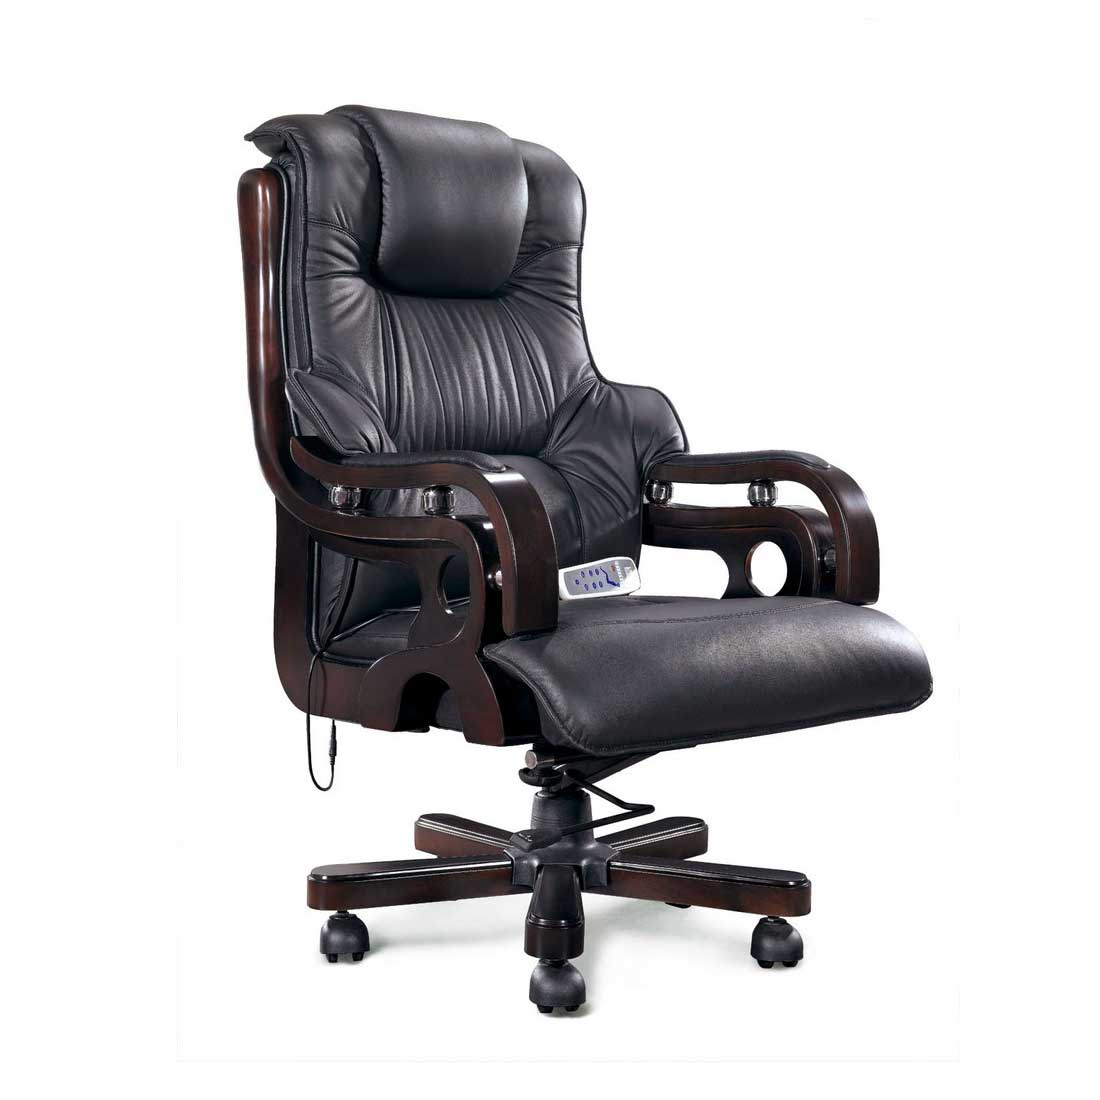 Executive office furniture office furniture - Office furnitur ...